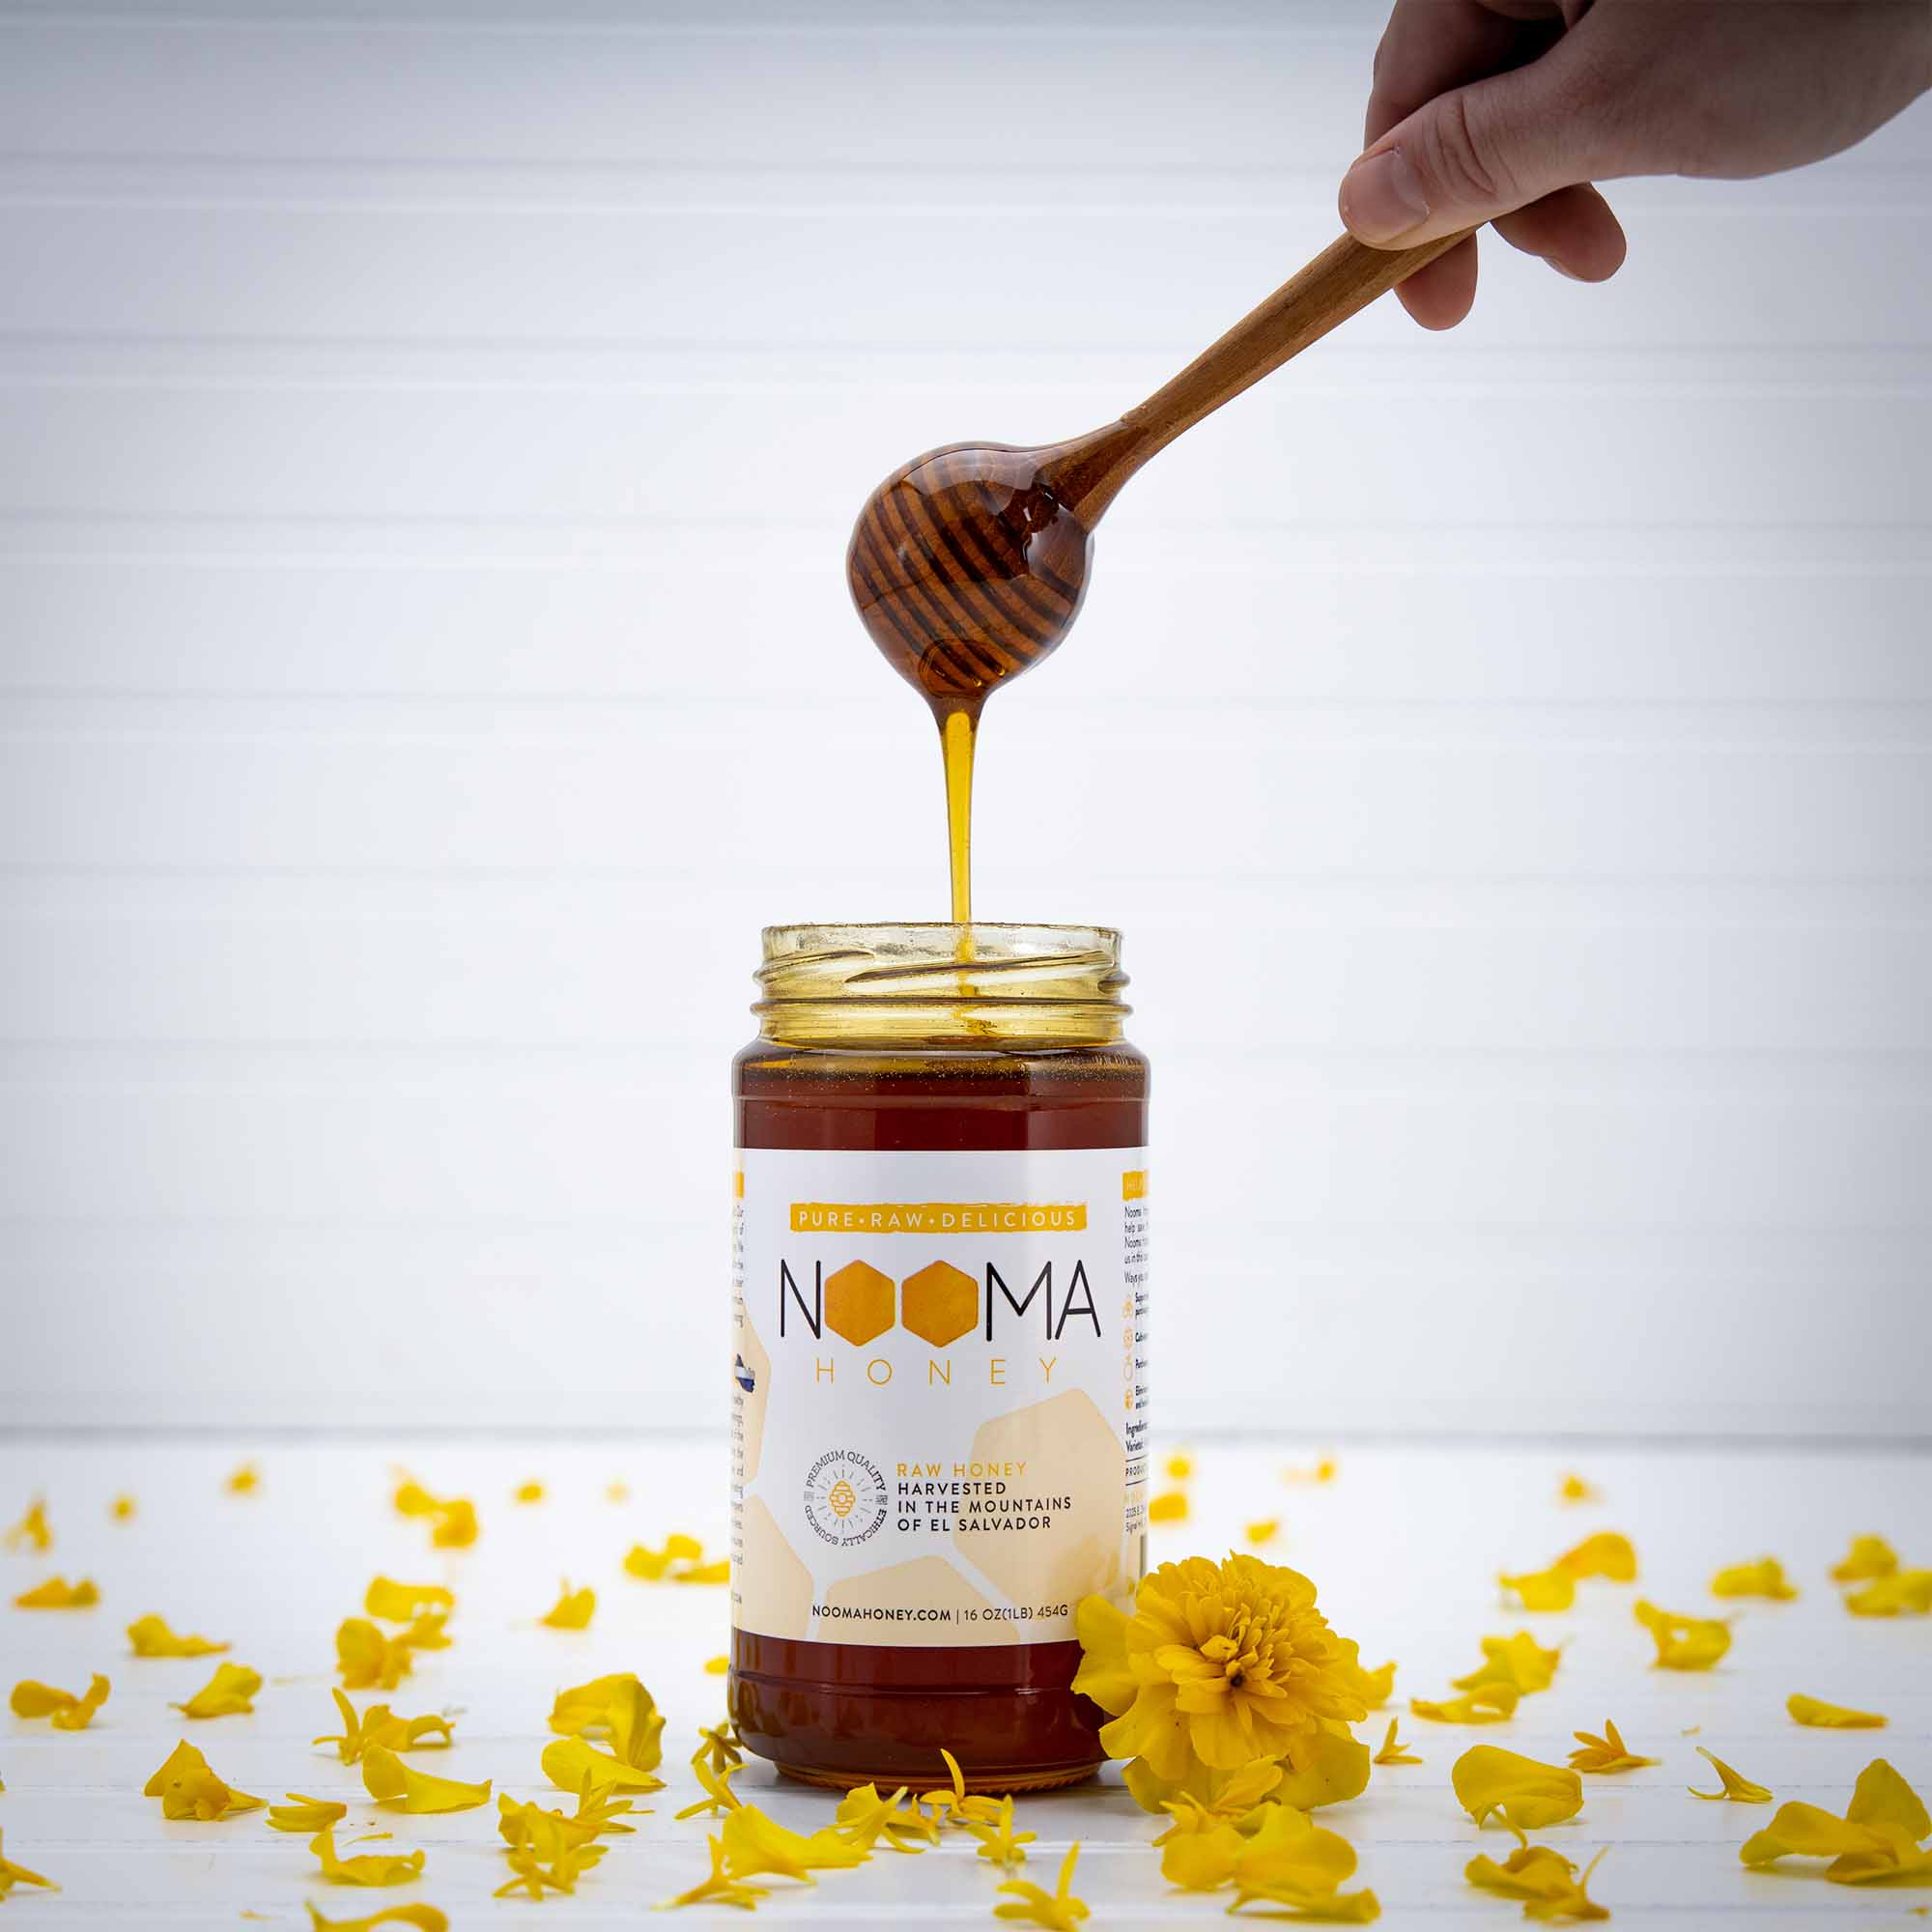 Nooma Honey Product Photo